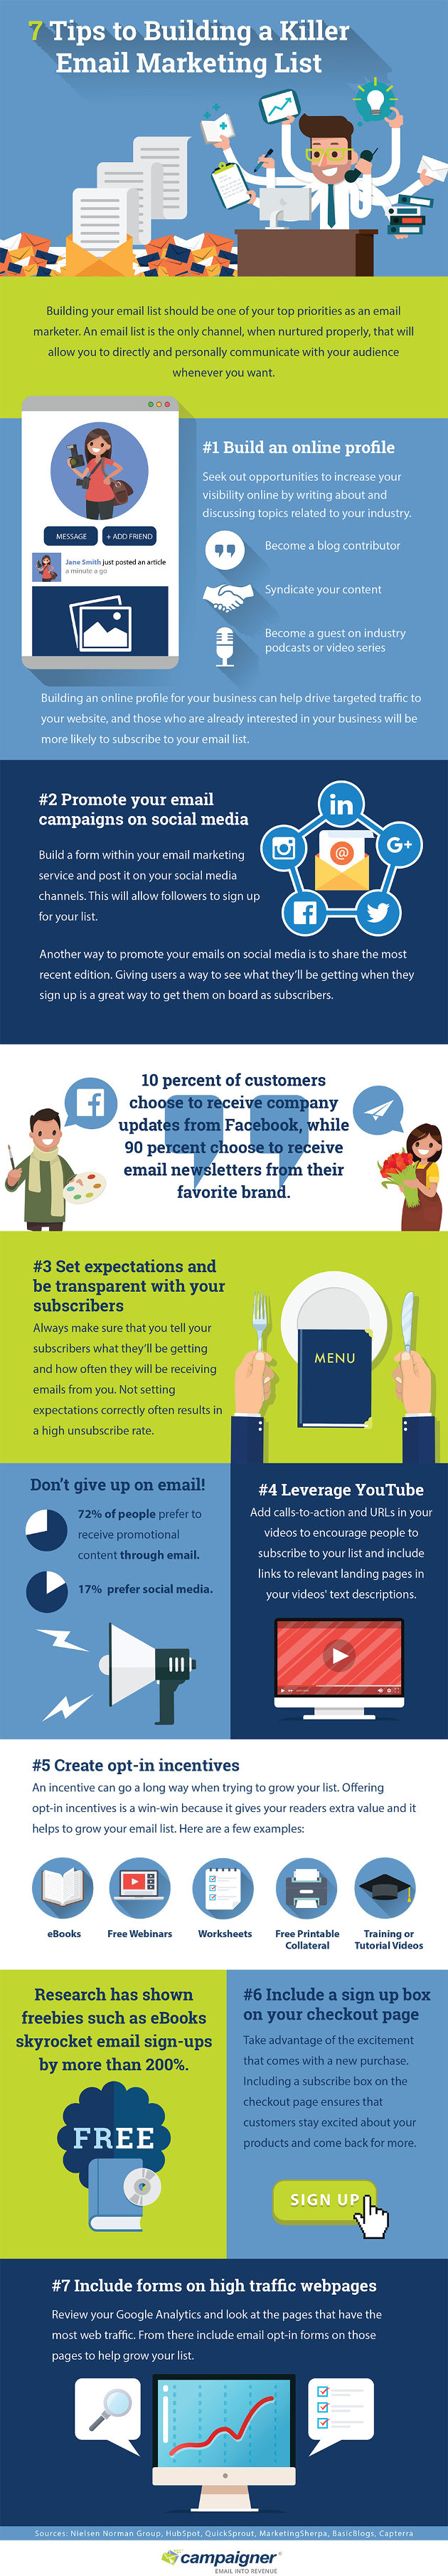 Seven Tips for Building a Killer Email List [Infographic]